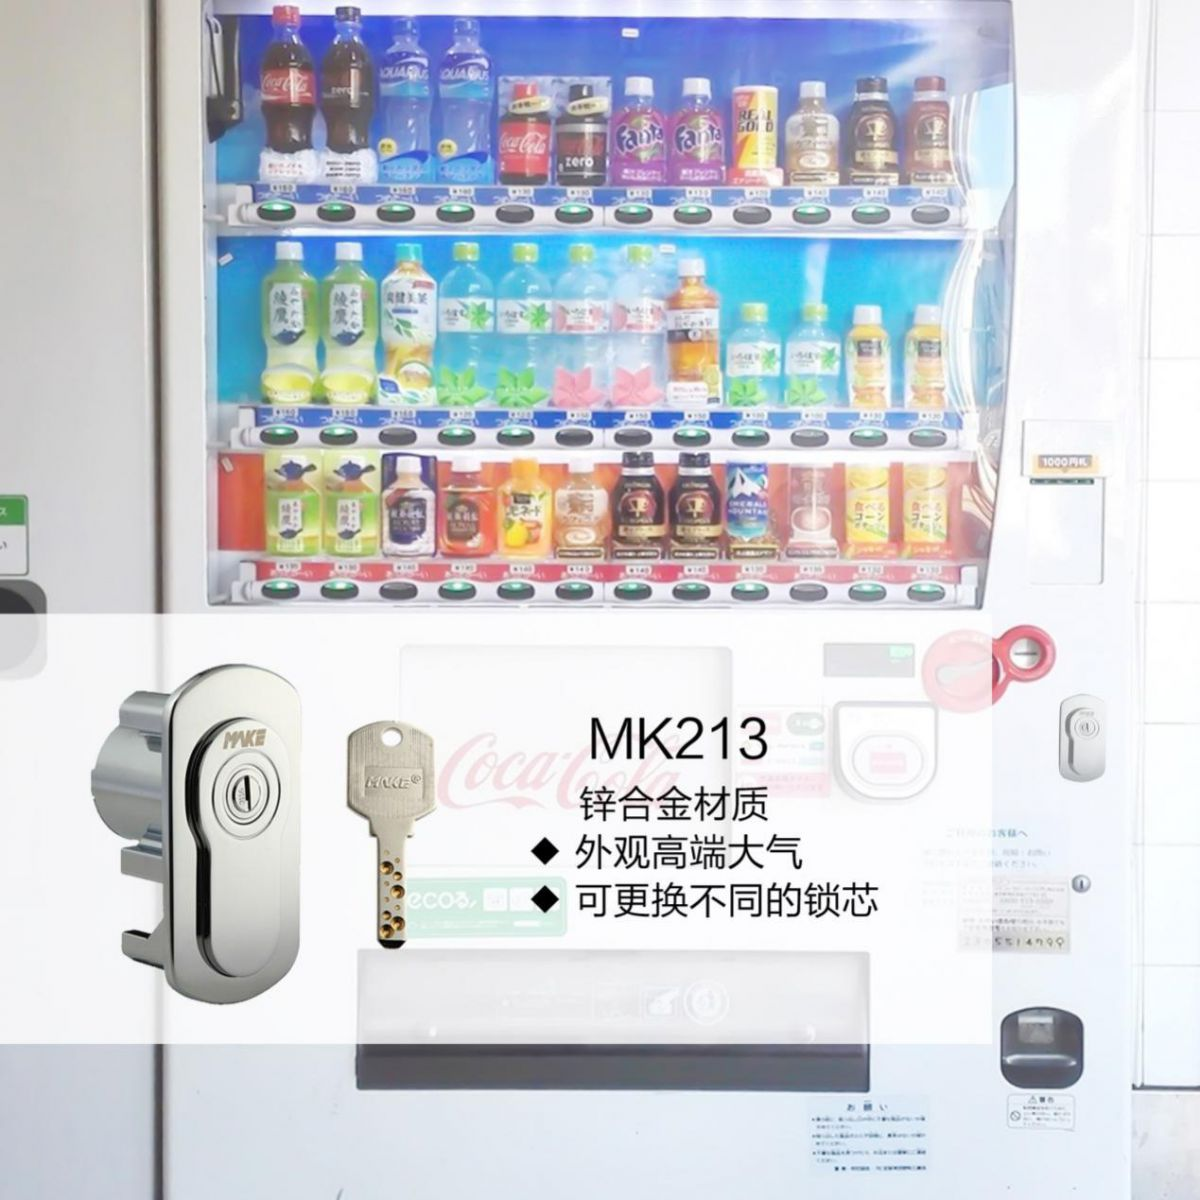 Pick the most reassuring lock for your vending machine